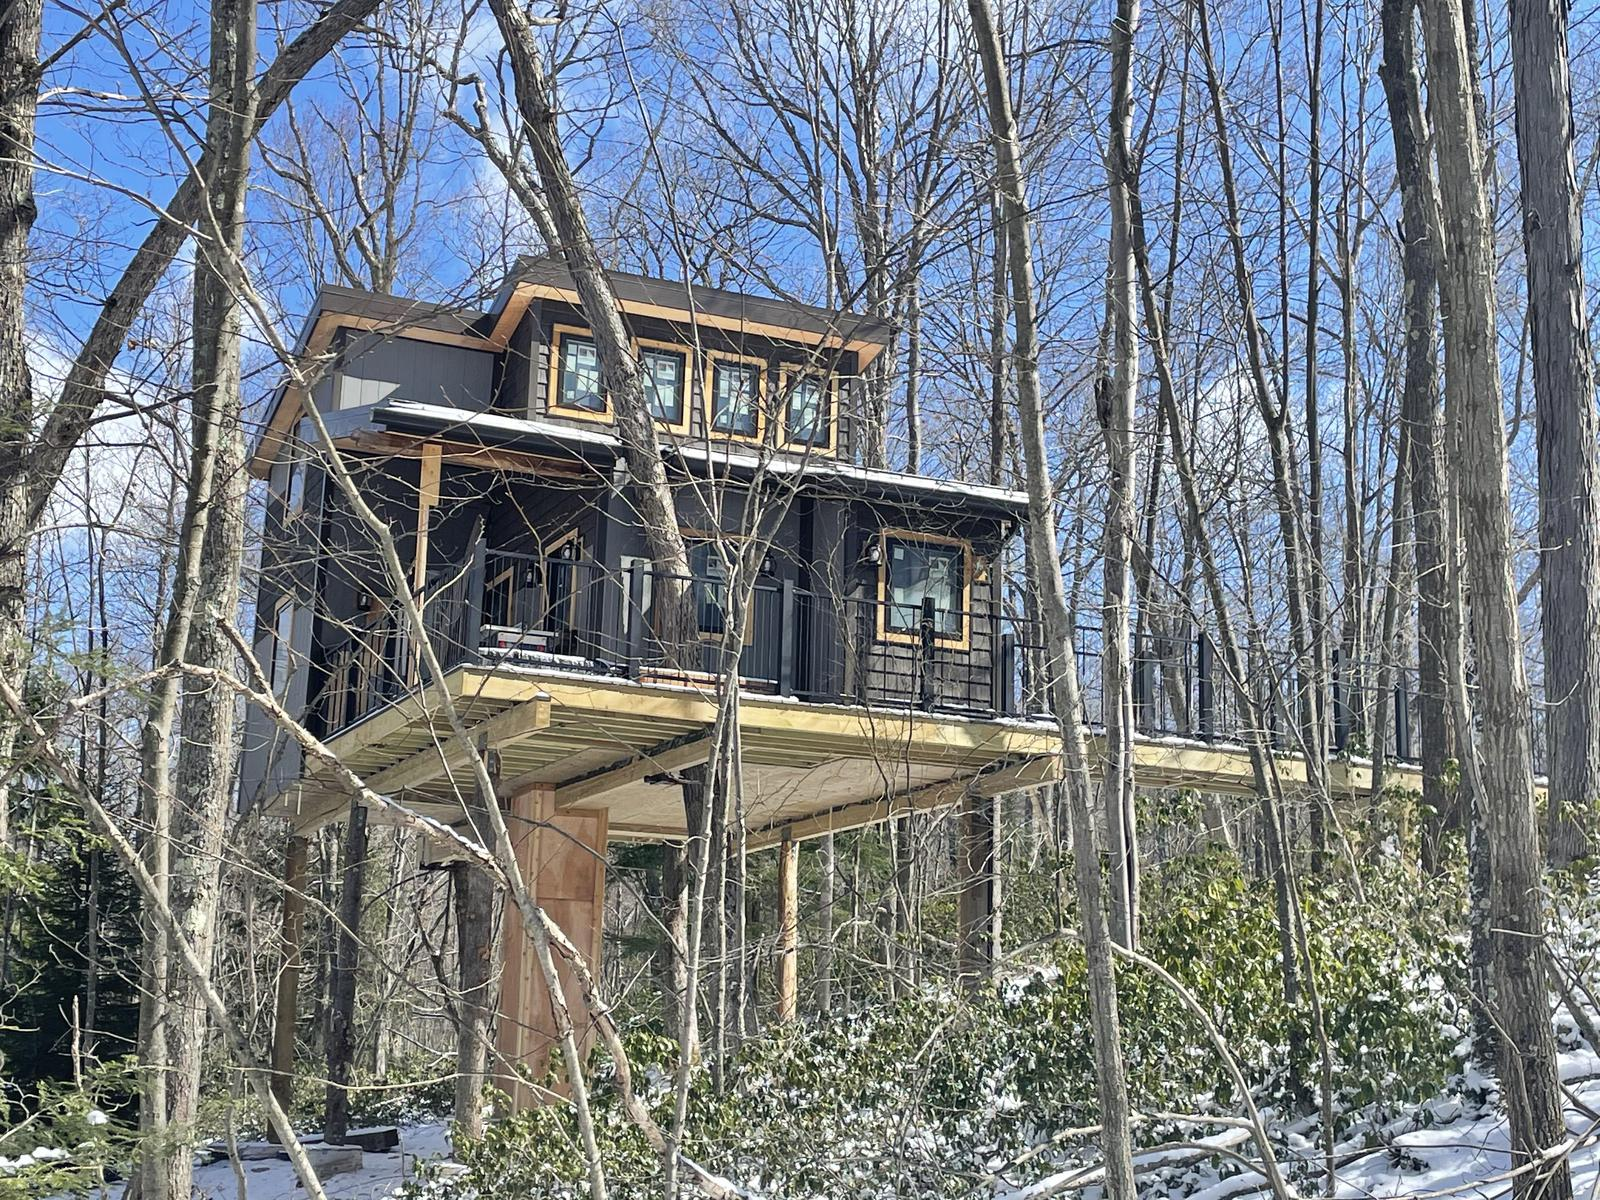 Daydreamer Treehouse Rental in Maryland